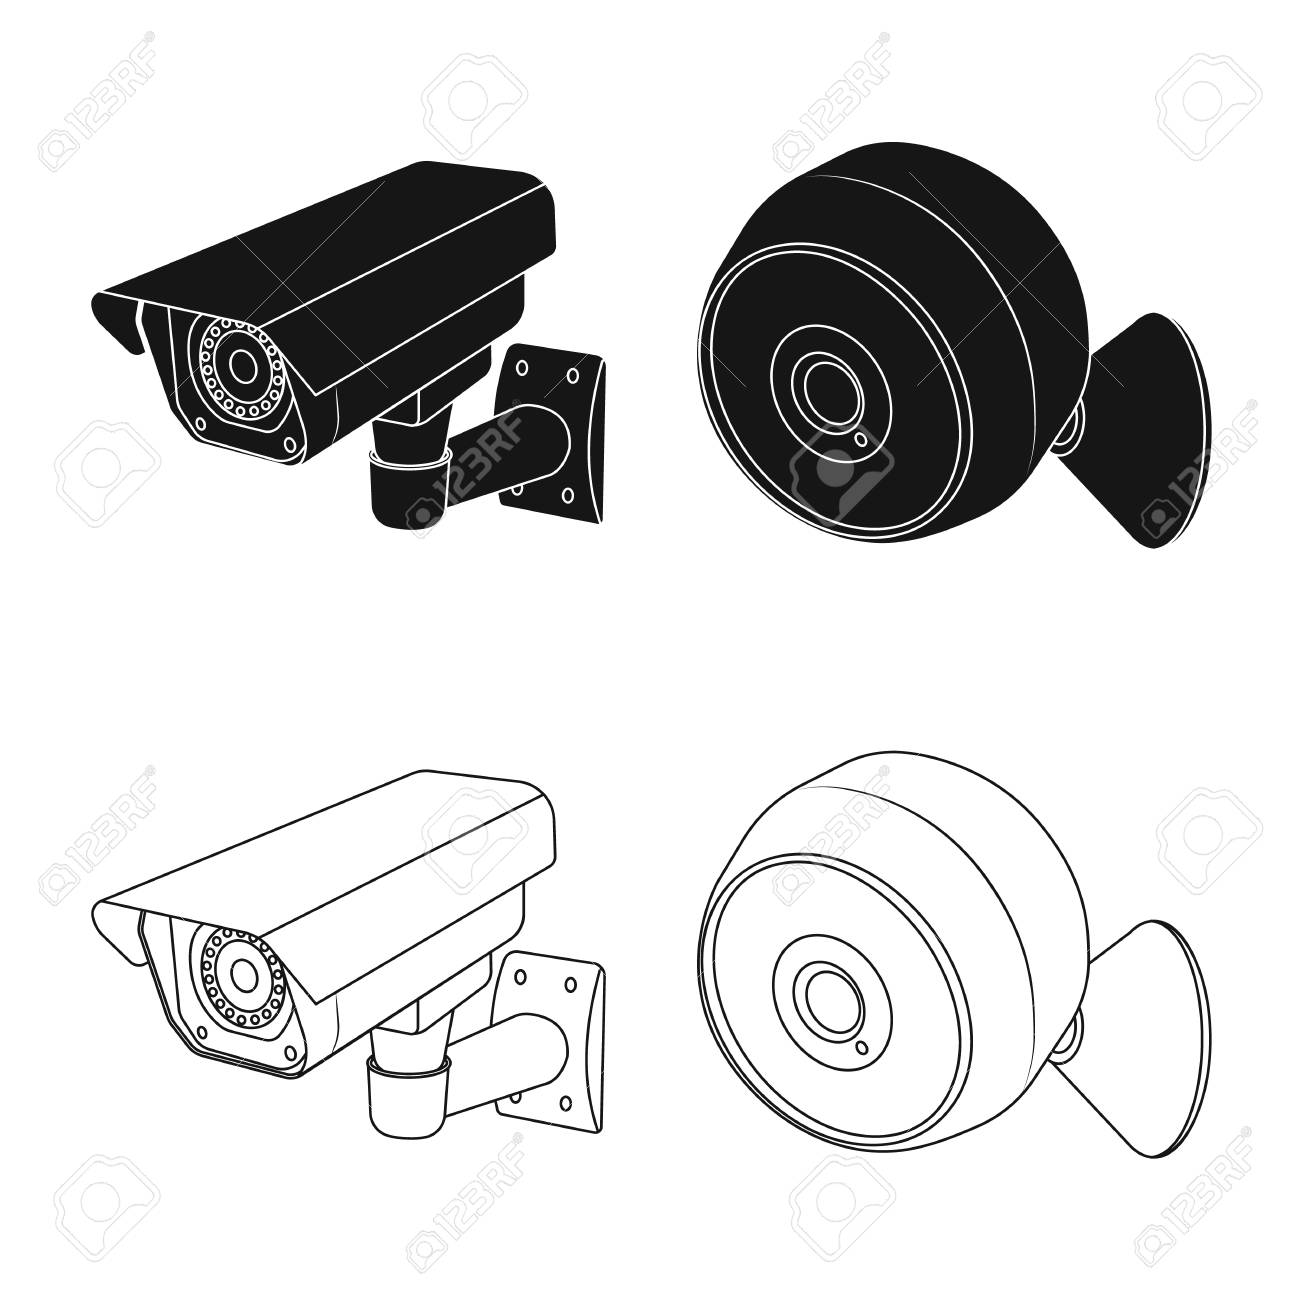 isolated object of cctv and camera symbol collection of cctv Product Camera System isolated object of cctv and camera symbol collection of cctv and system stock symbol for